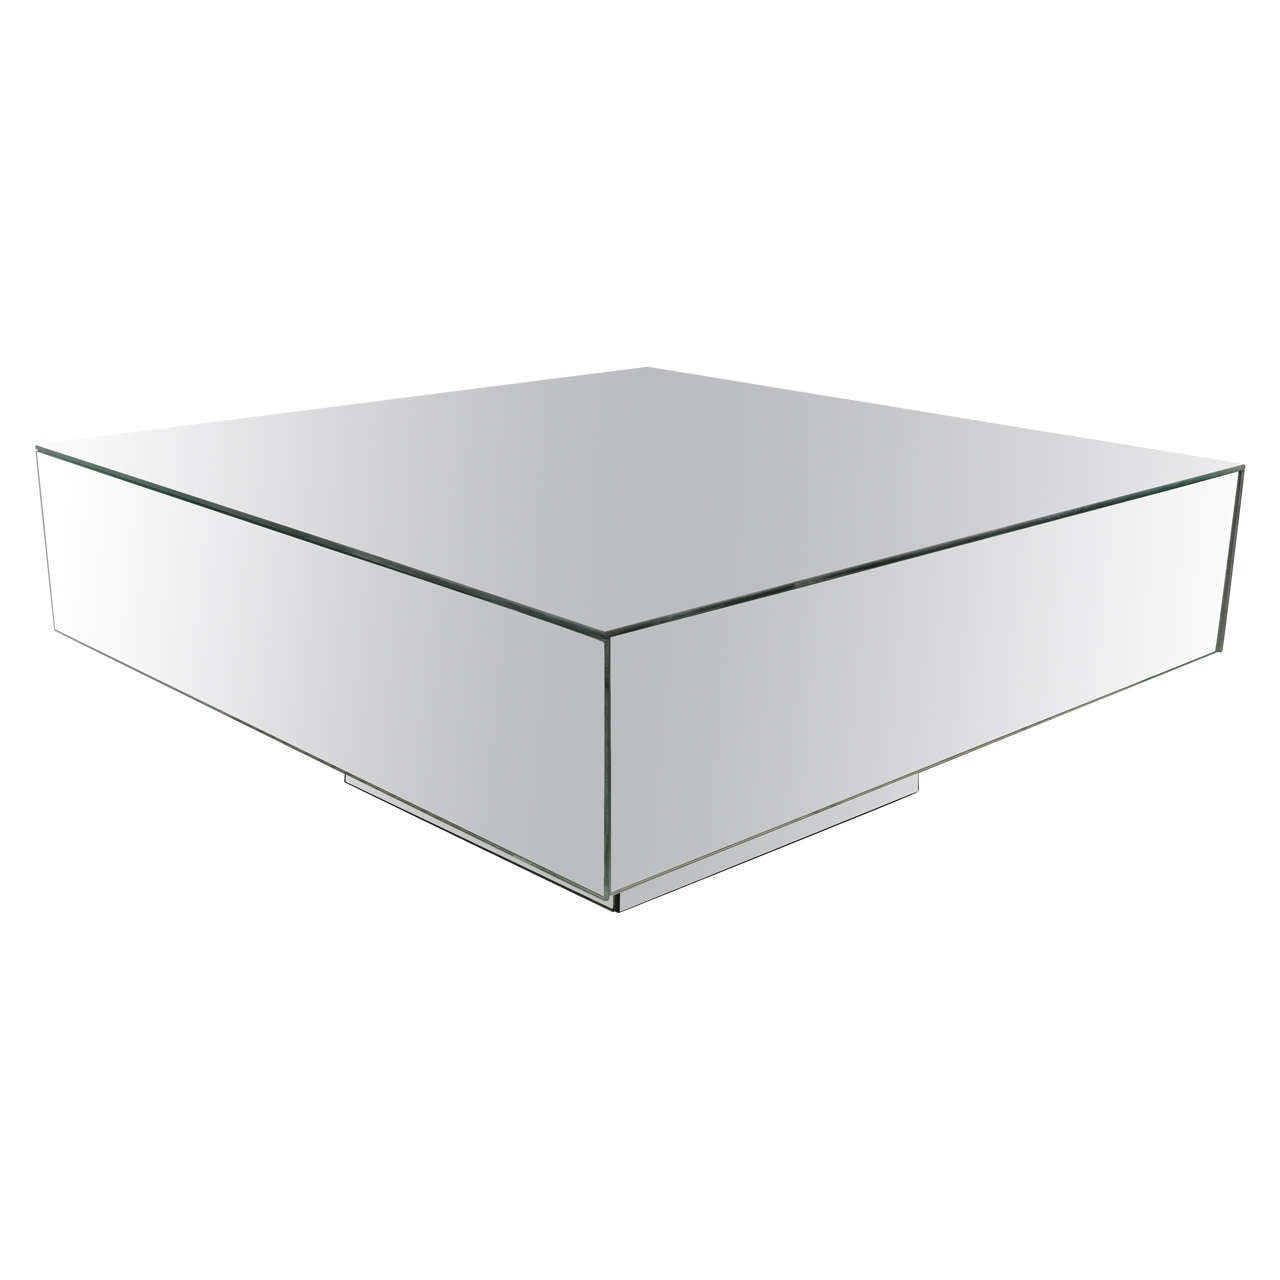 Mirror Coffee Table : Home > Furniture > Tables > Coffee and Cocktail Tables